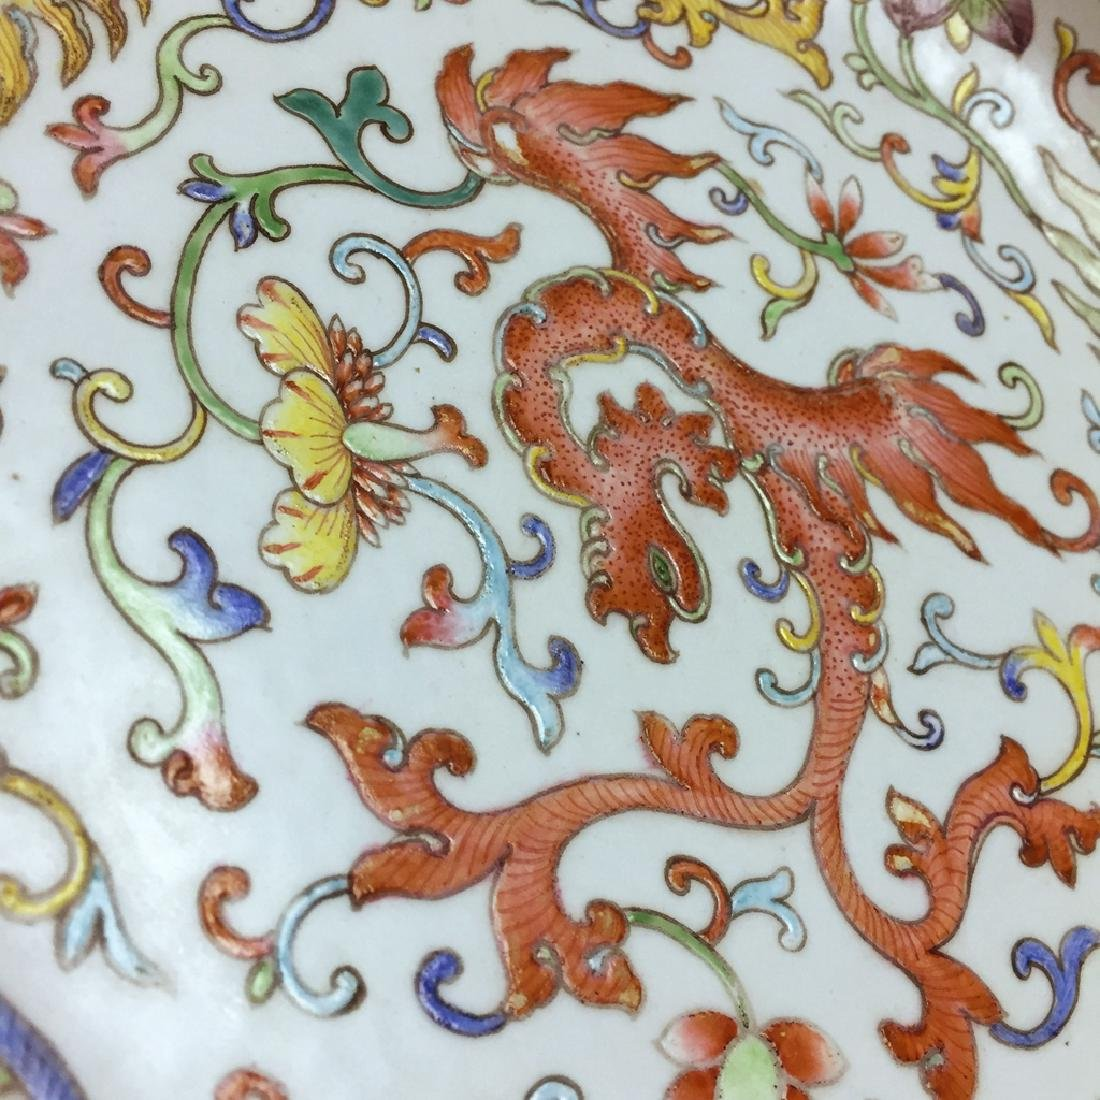 Chinese Famille Rose Porcelain Plate Guangxu Mark - 5